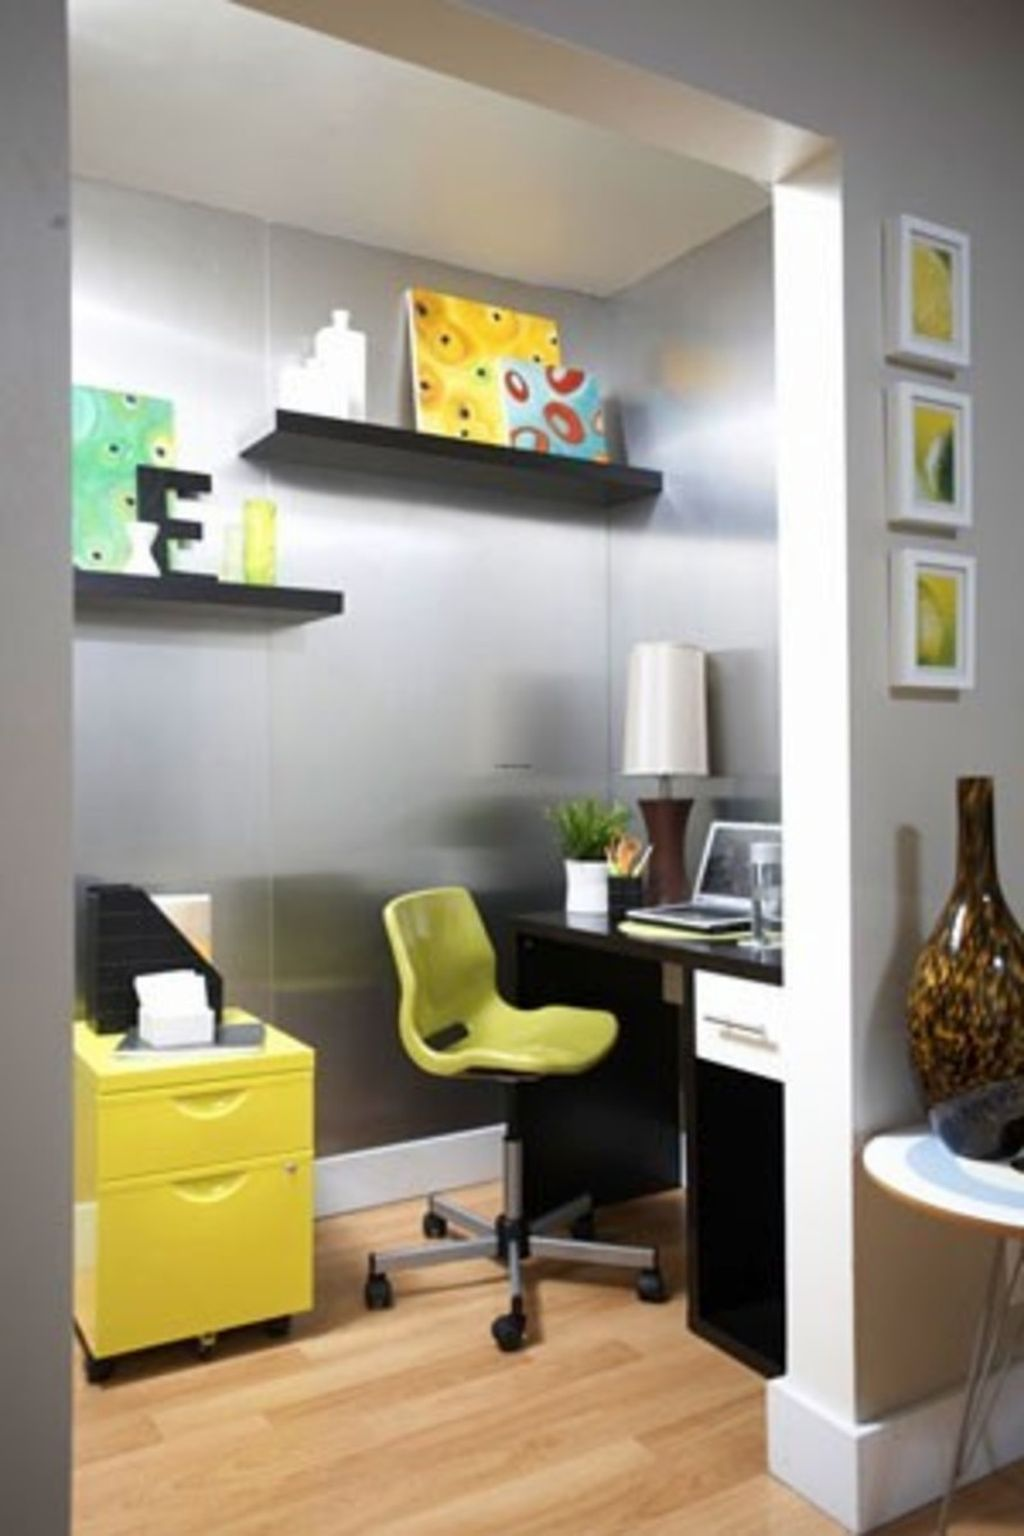 home office ideas small space gallery for home office design ideas